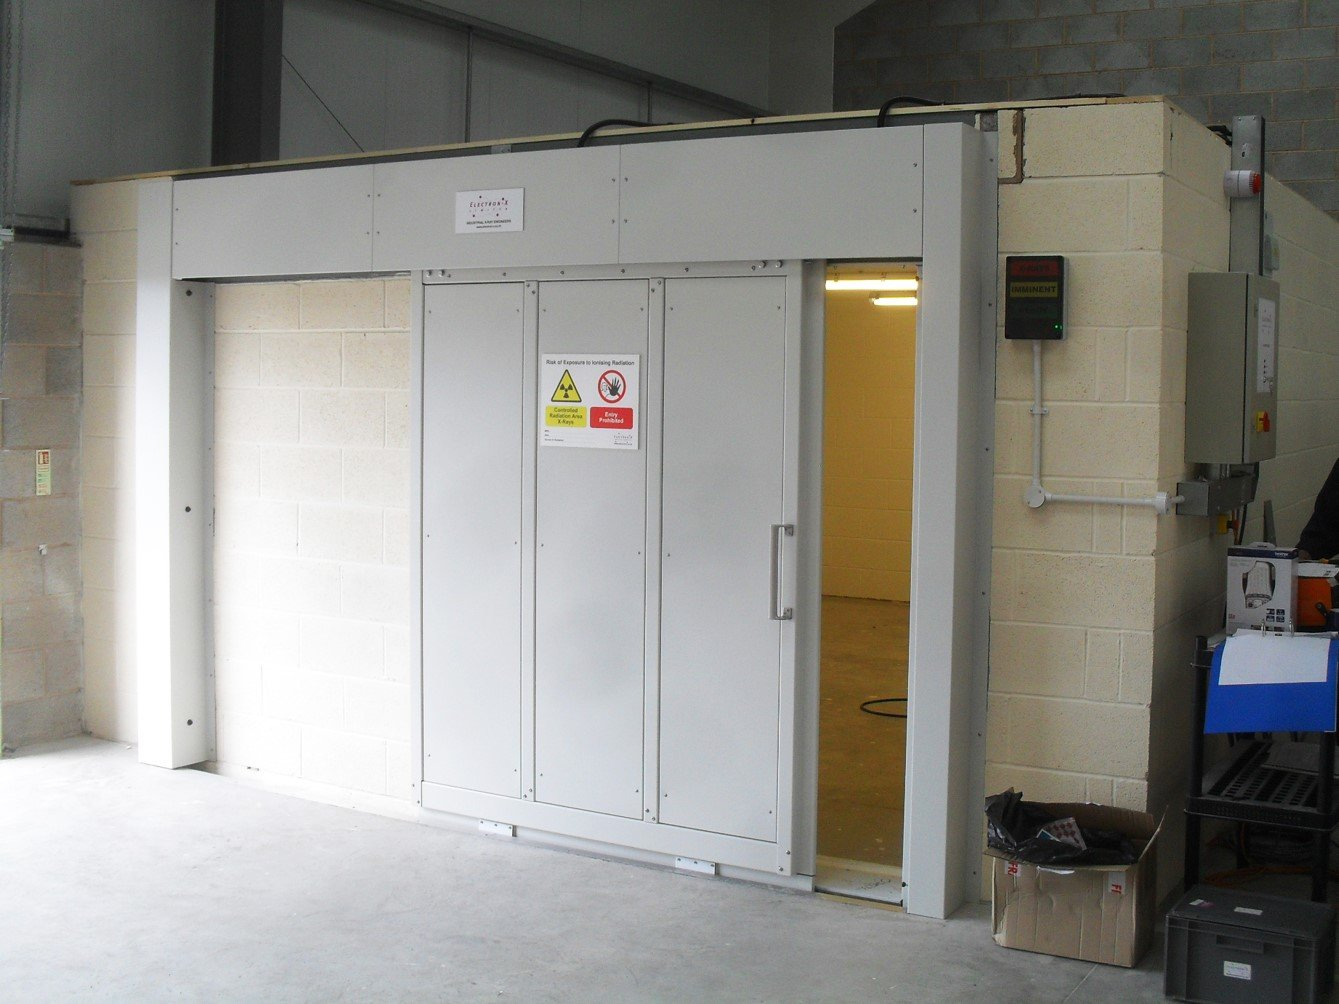 160kV Concrete Block X-ray Room